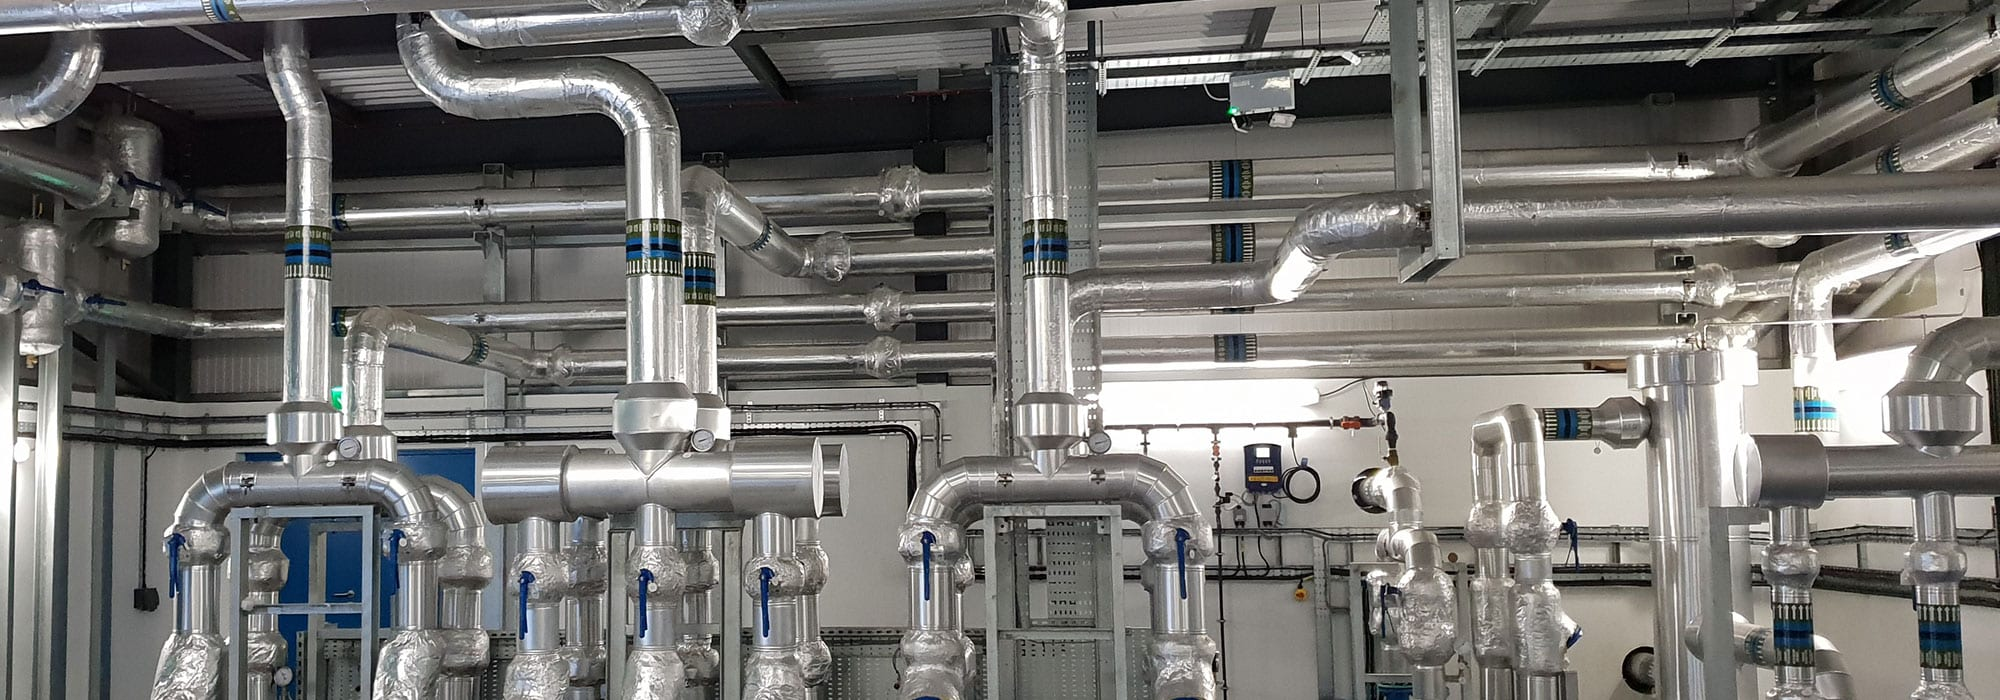 Pipework Featured Image